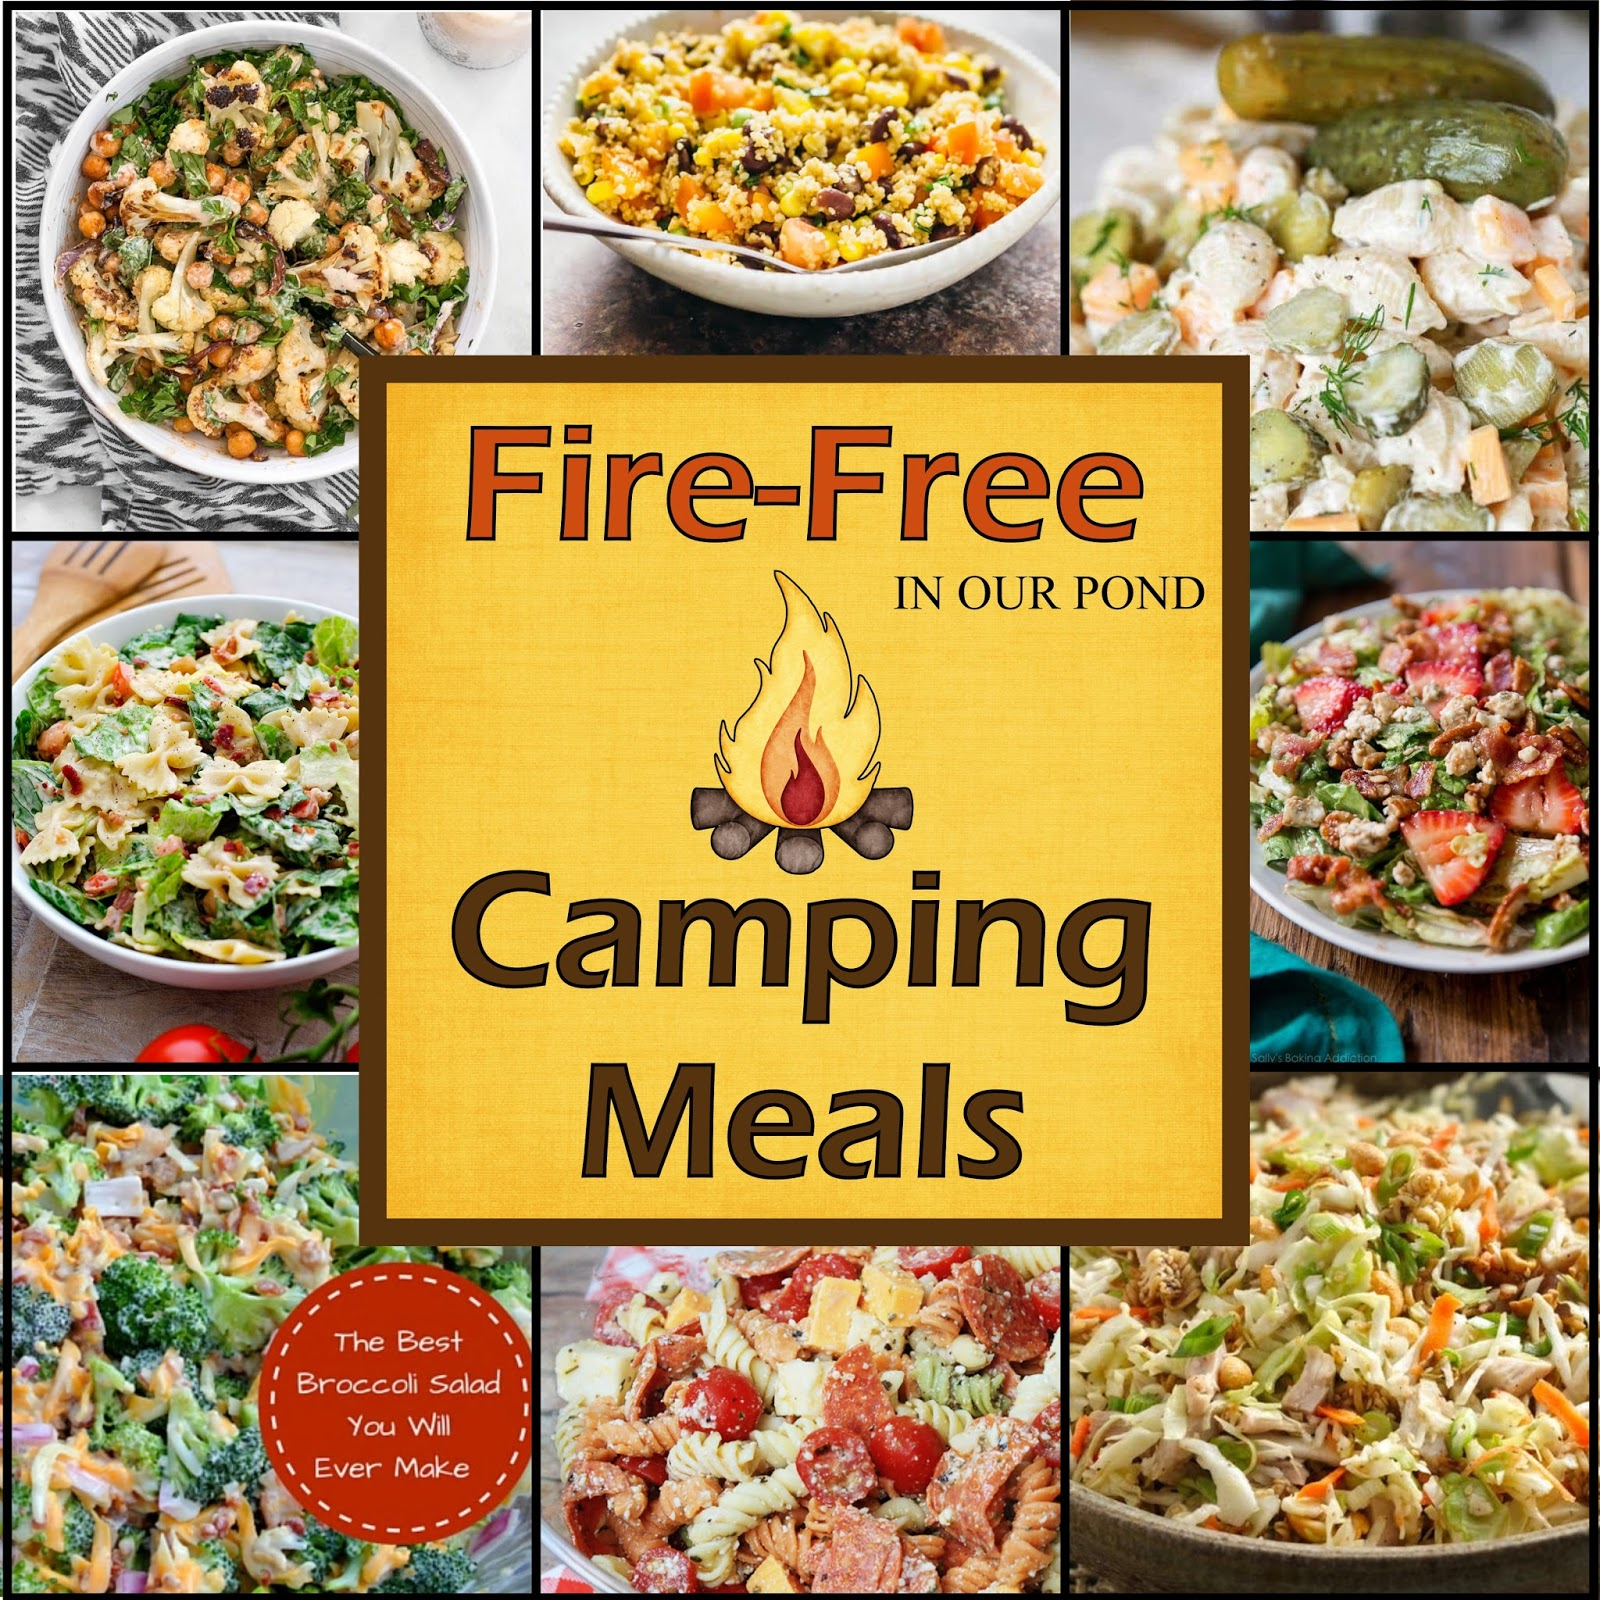 11 Make Ahead Camping Recipes For Easy Meal Planning: 24 Fire-Free Camping Meals